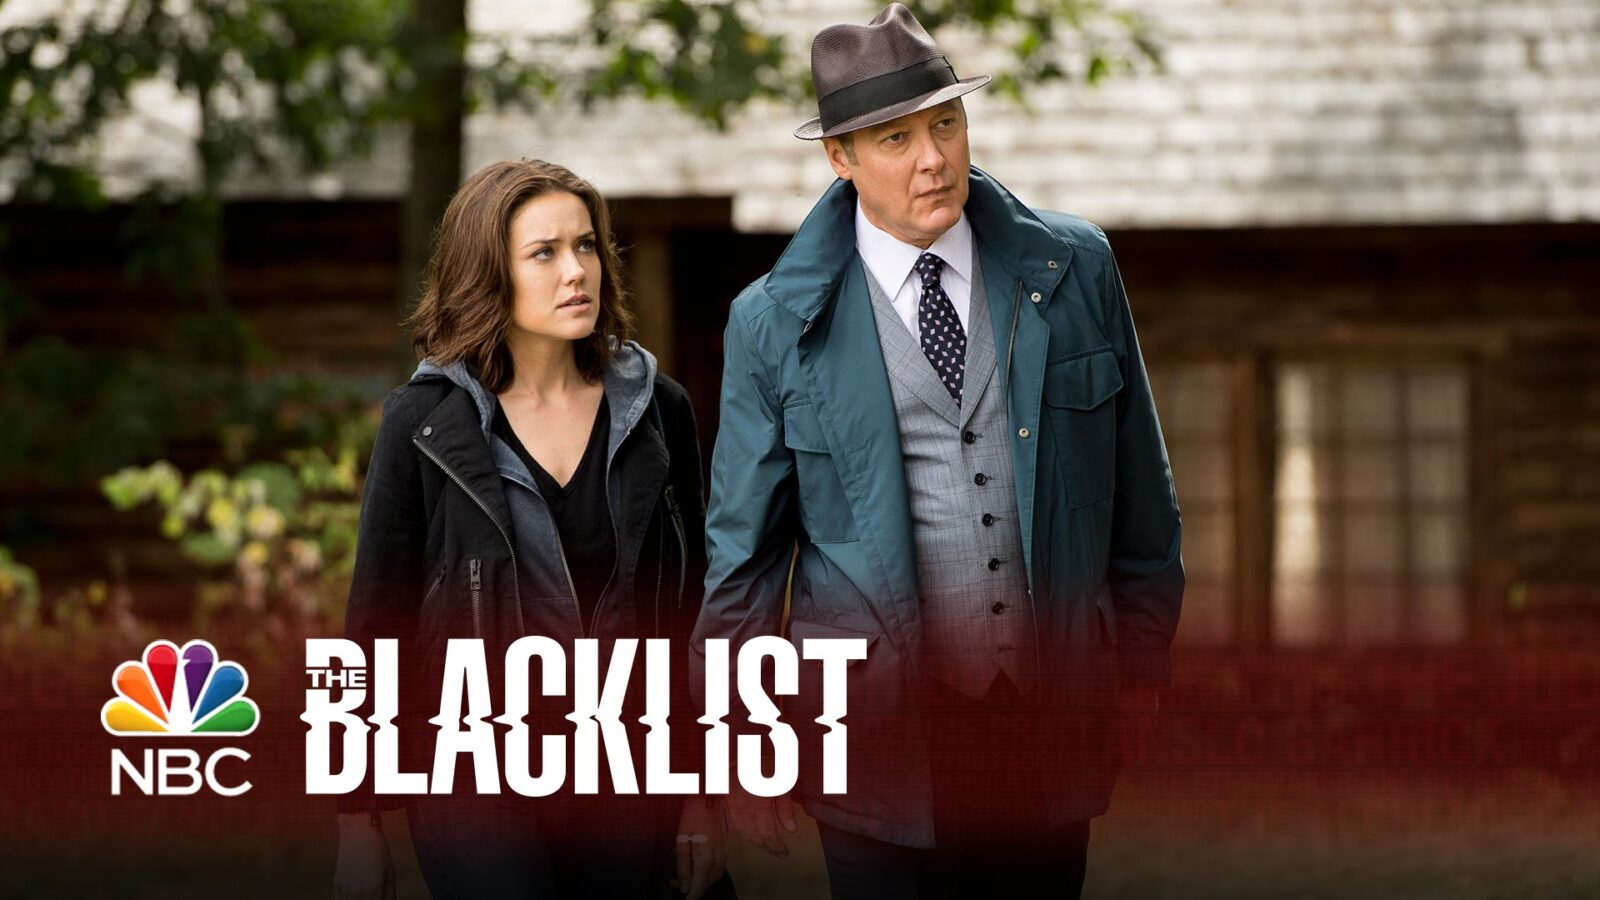 The Blacklist high quality background